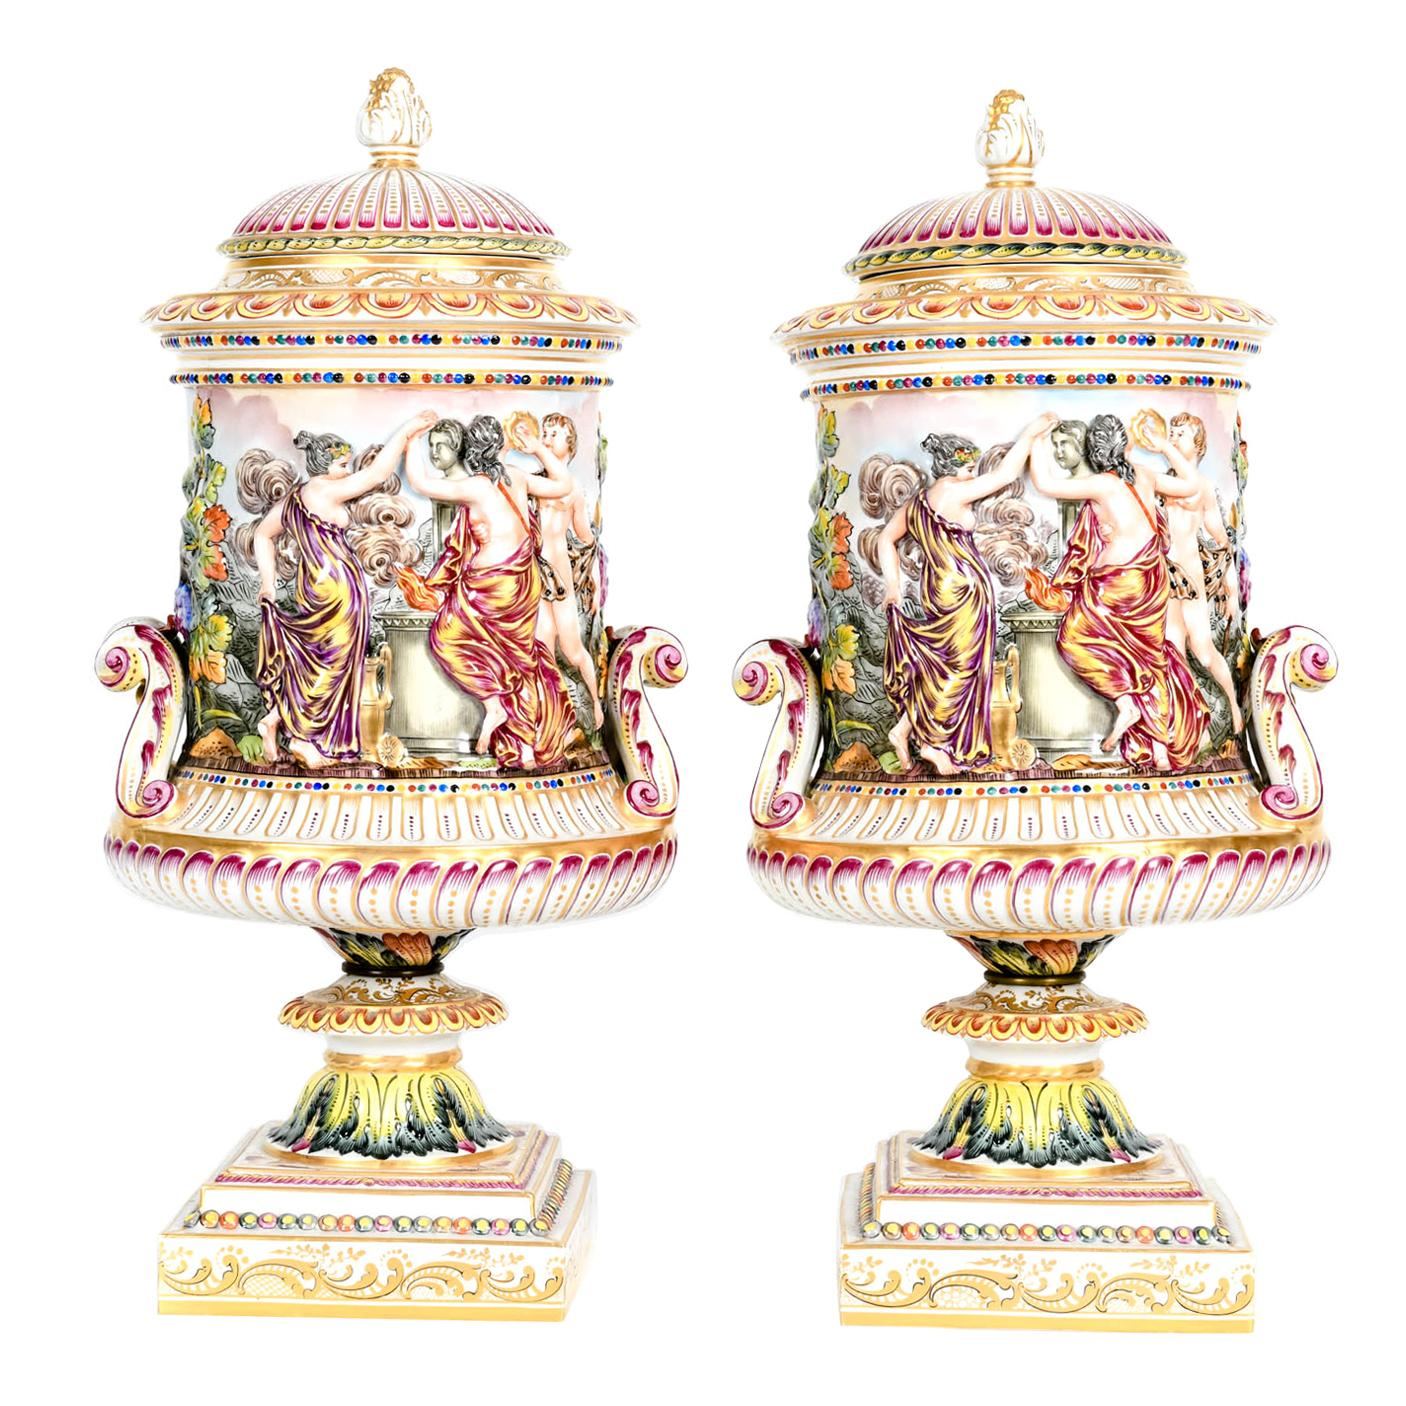 Large Pair of Porcelain Covered Urns / Decorative Pieces